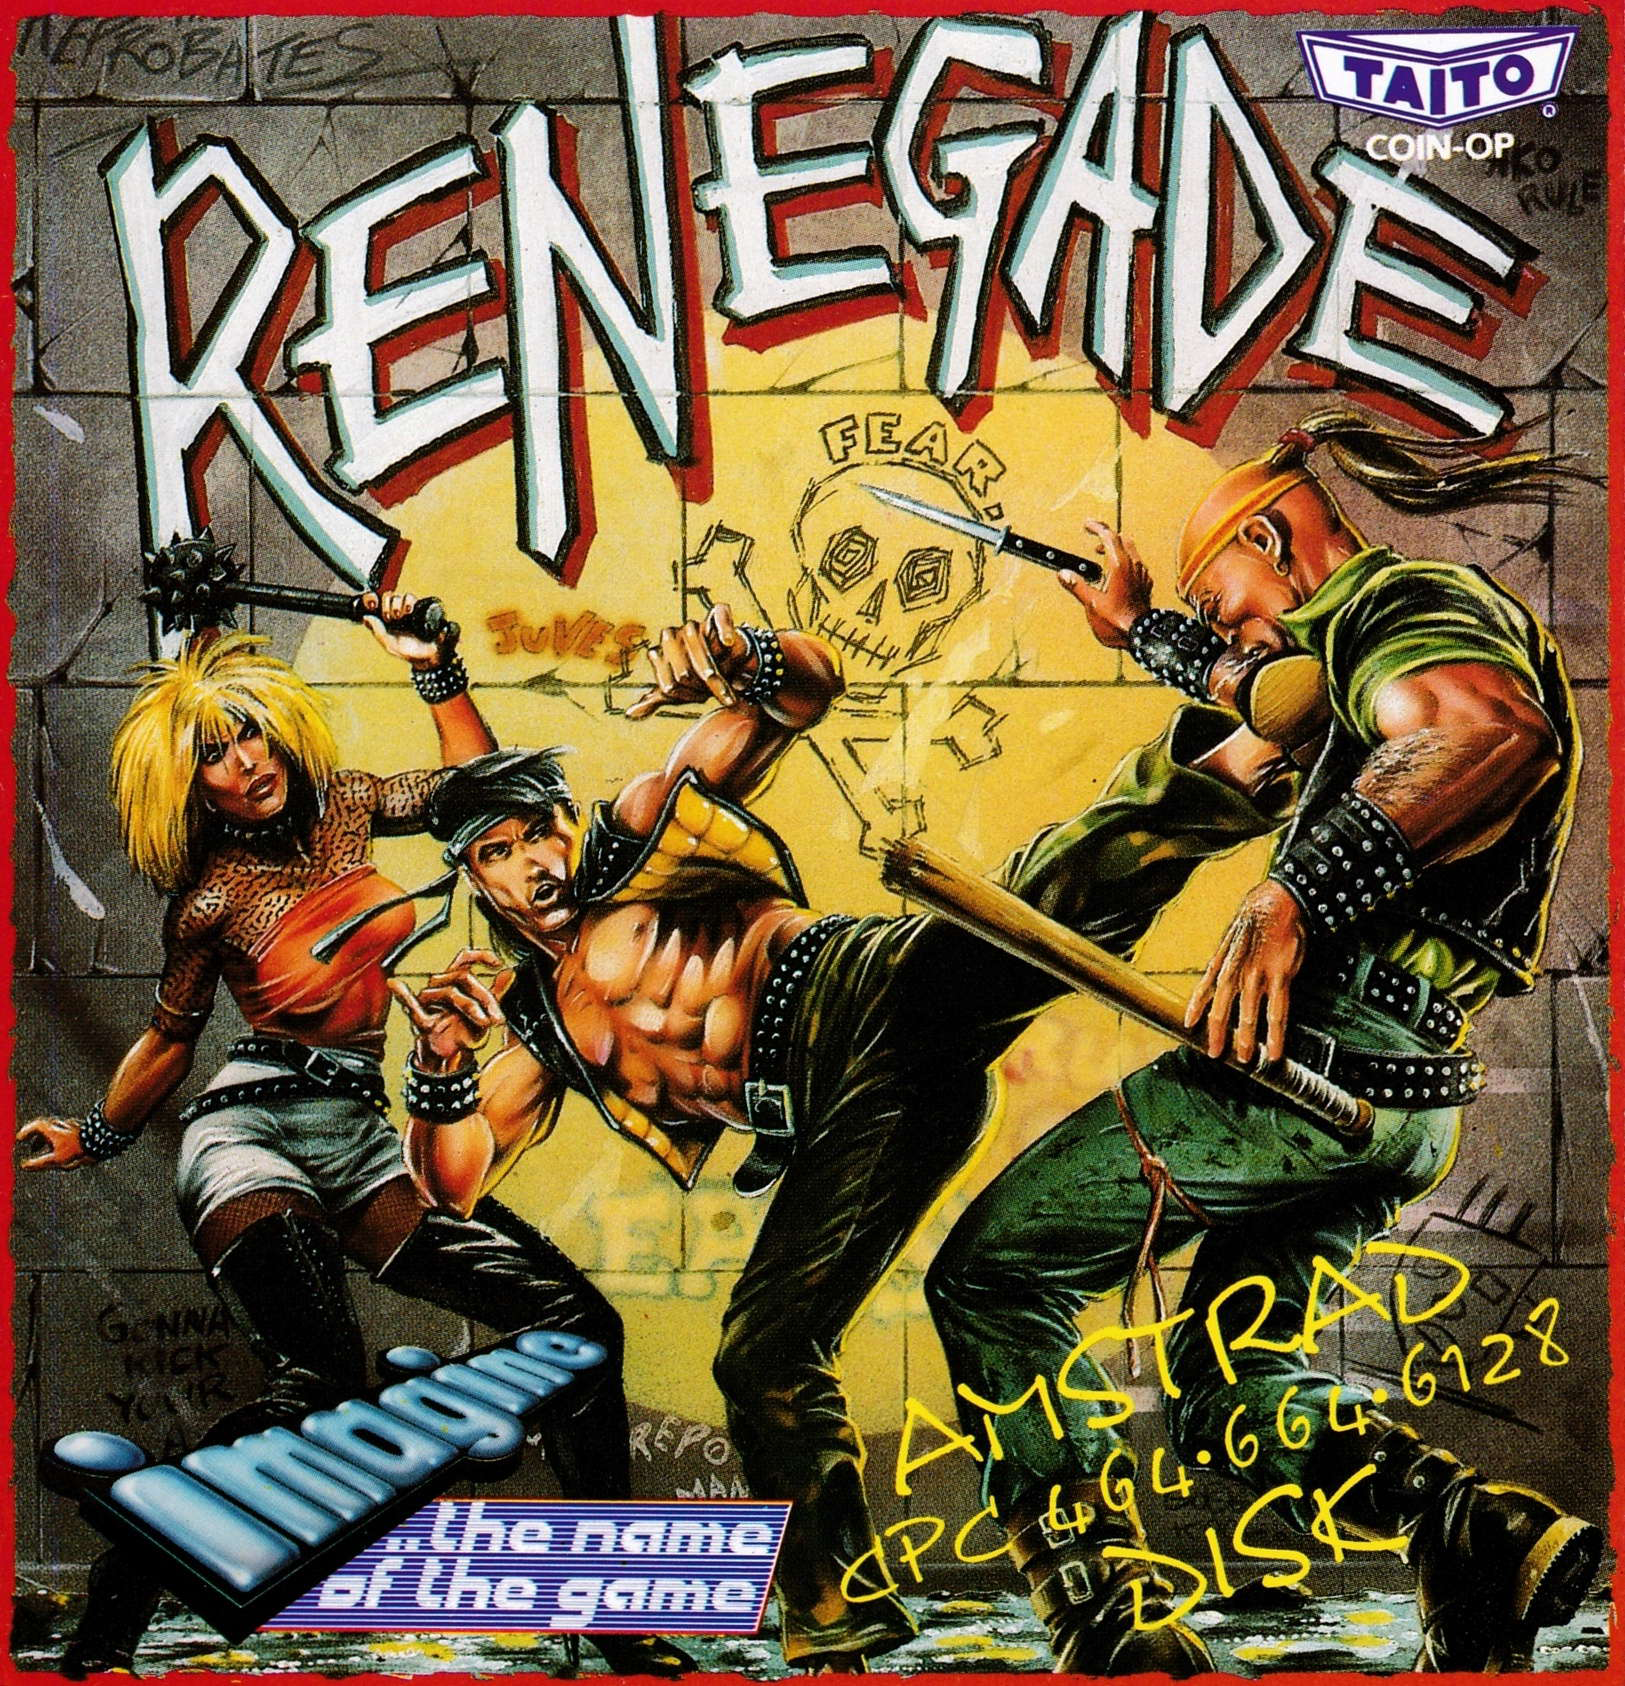 cover of the Amstrad CPC game Renegade  by GameBase CPC